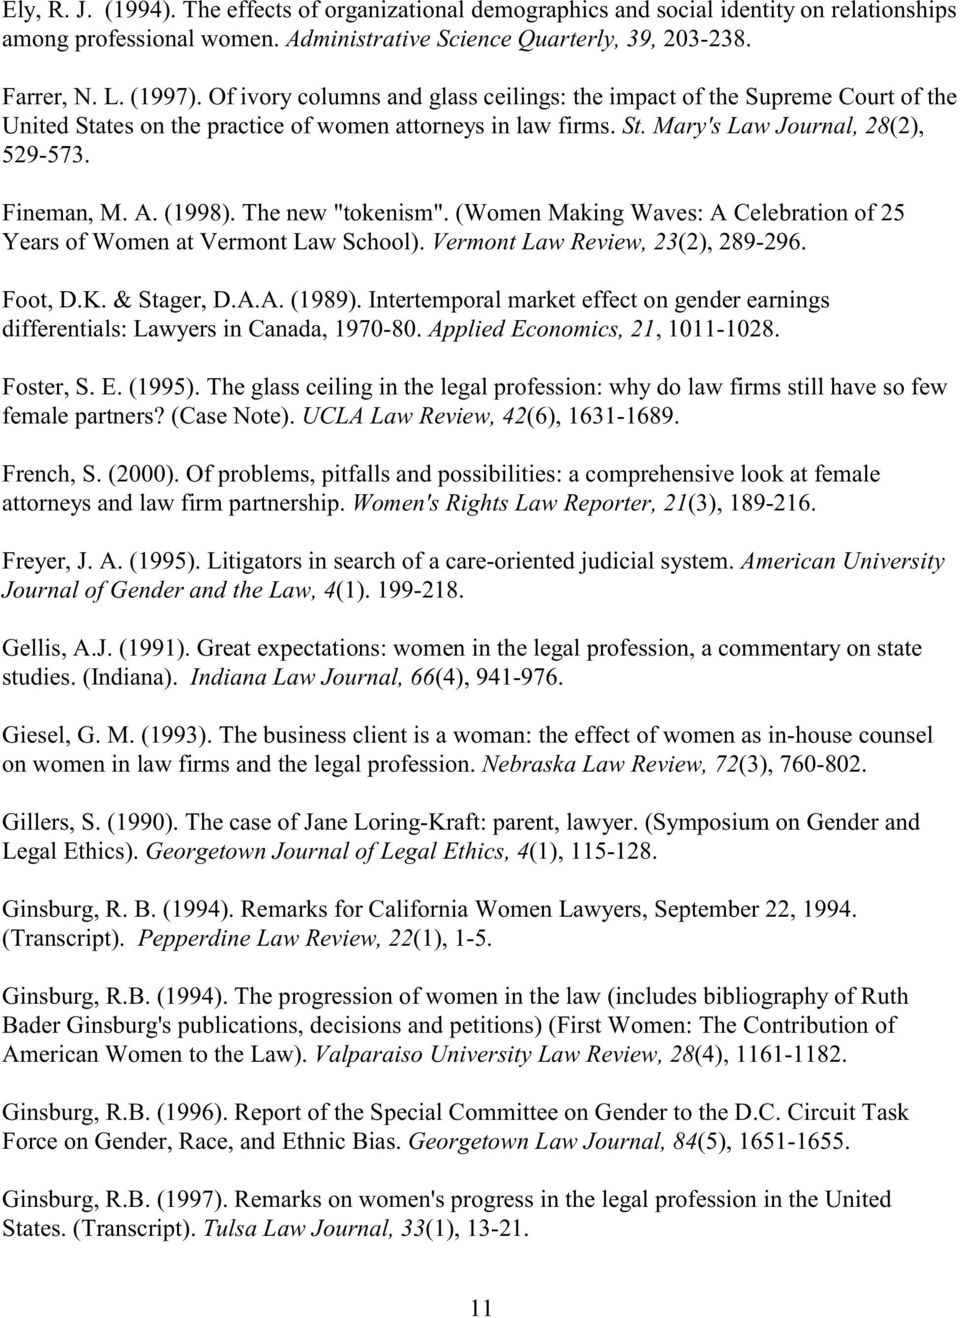 "(1998). The new ""tokenism"". (Women Making Waves: A Celebration of 25 Years of Women at Vermont Law School). Vermont Law Review, 23(2), 289-296. Foot, D.K. & Stager, D.A.A. (1989)."